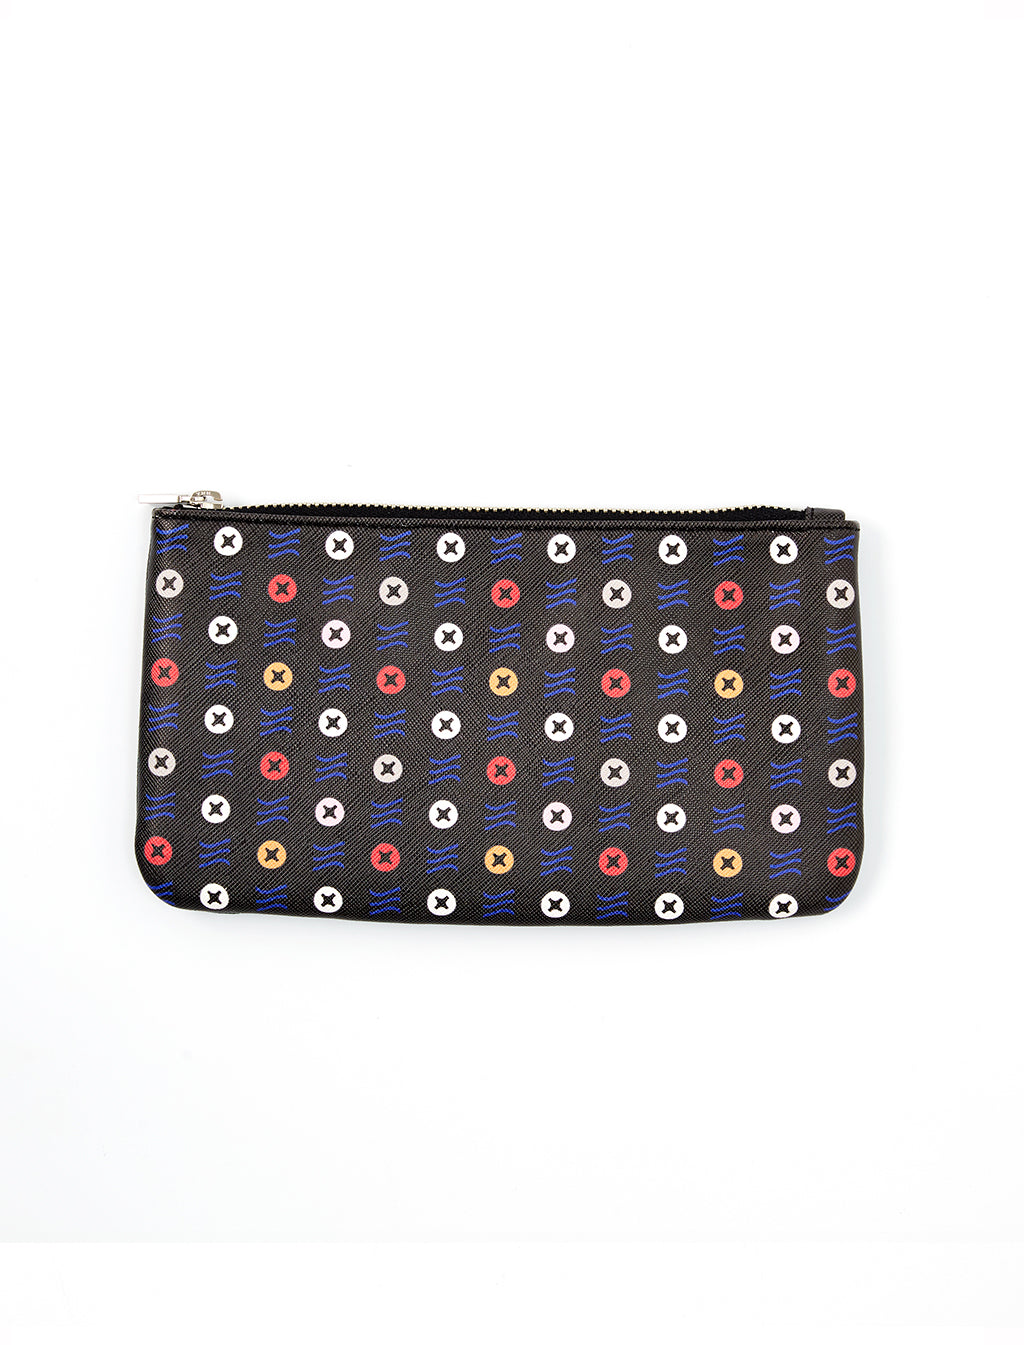 PRINTED LISA KING X JIM THOMPSON X SIWILAI COIN PURSE